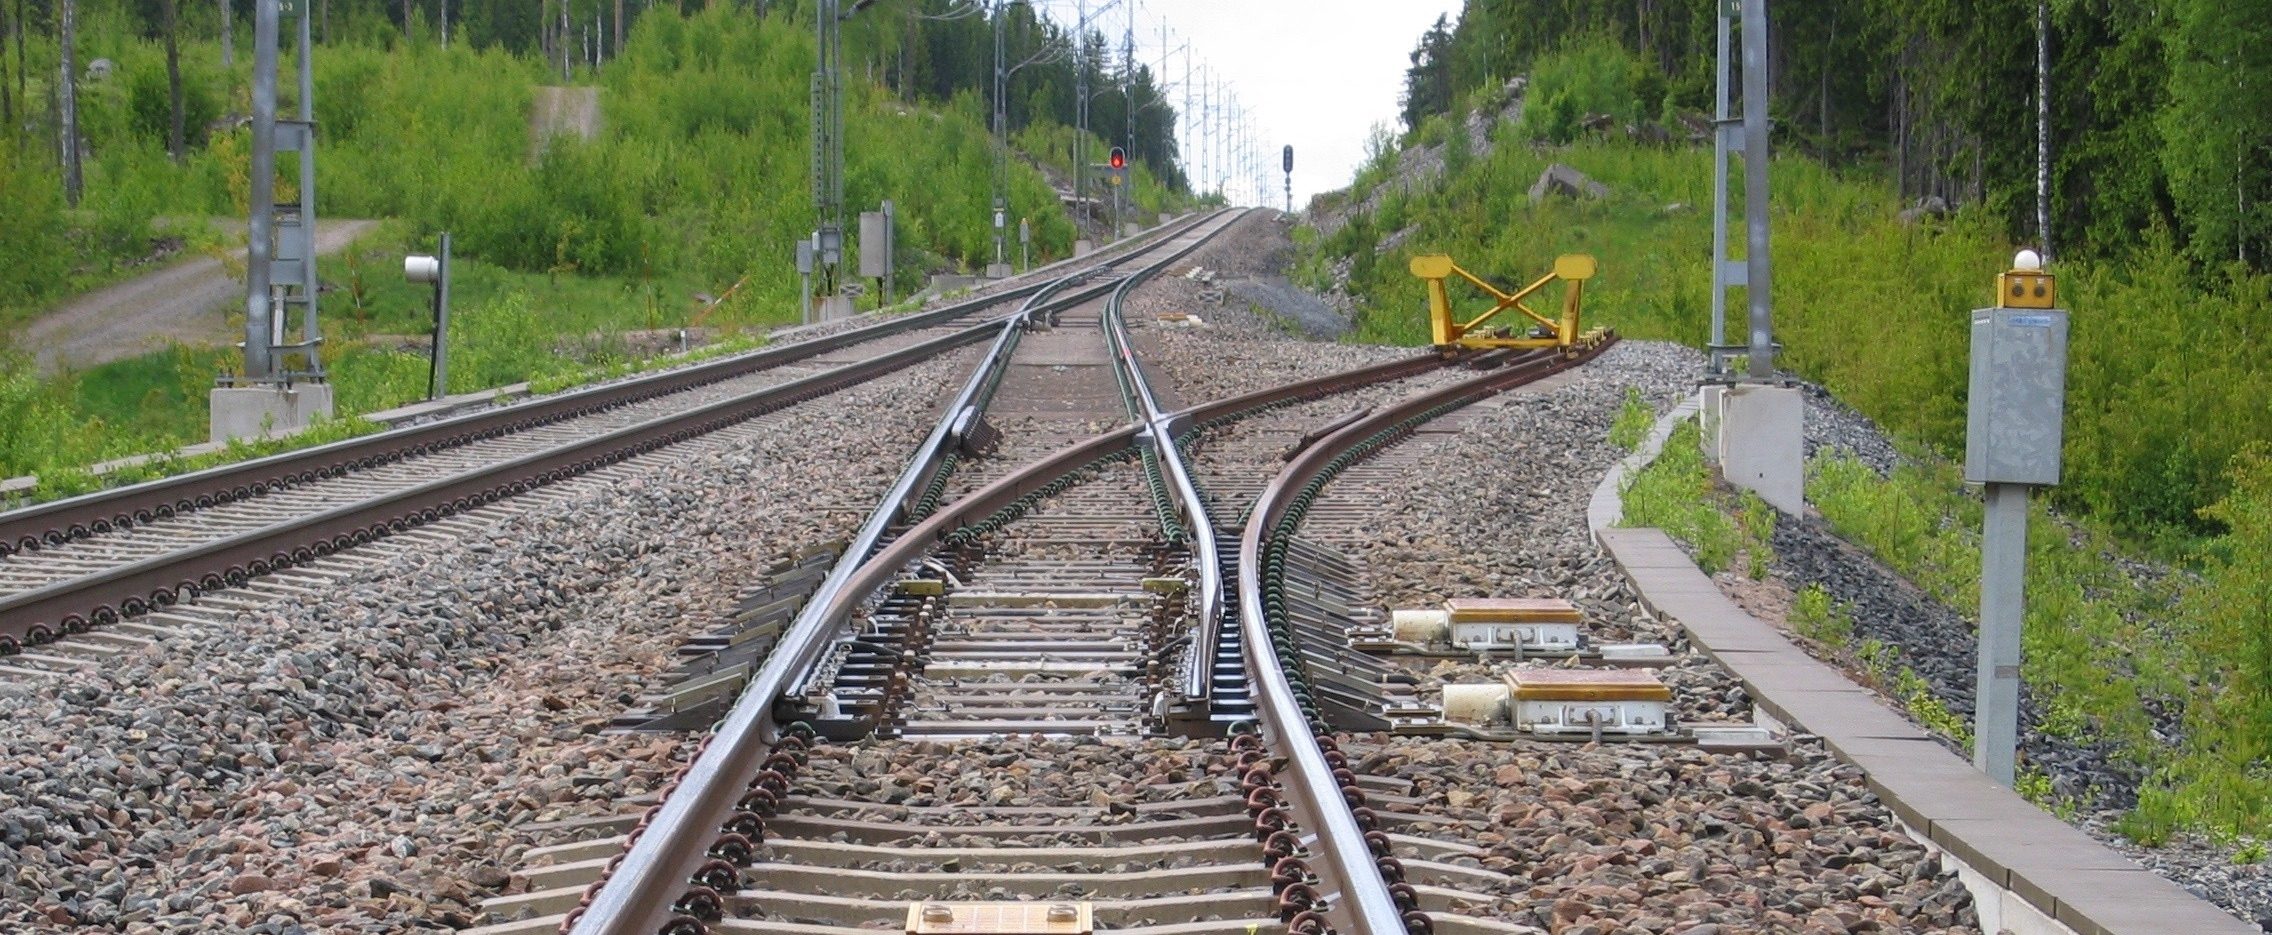 image shows railroad tracks with a switch to allow the train to go in one of two directions